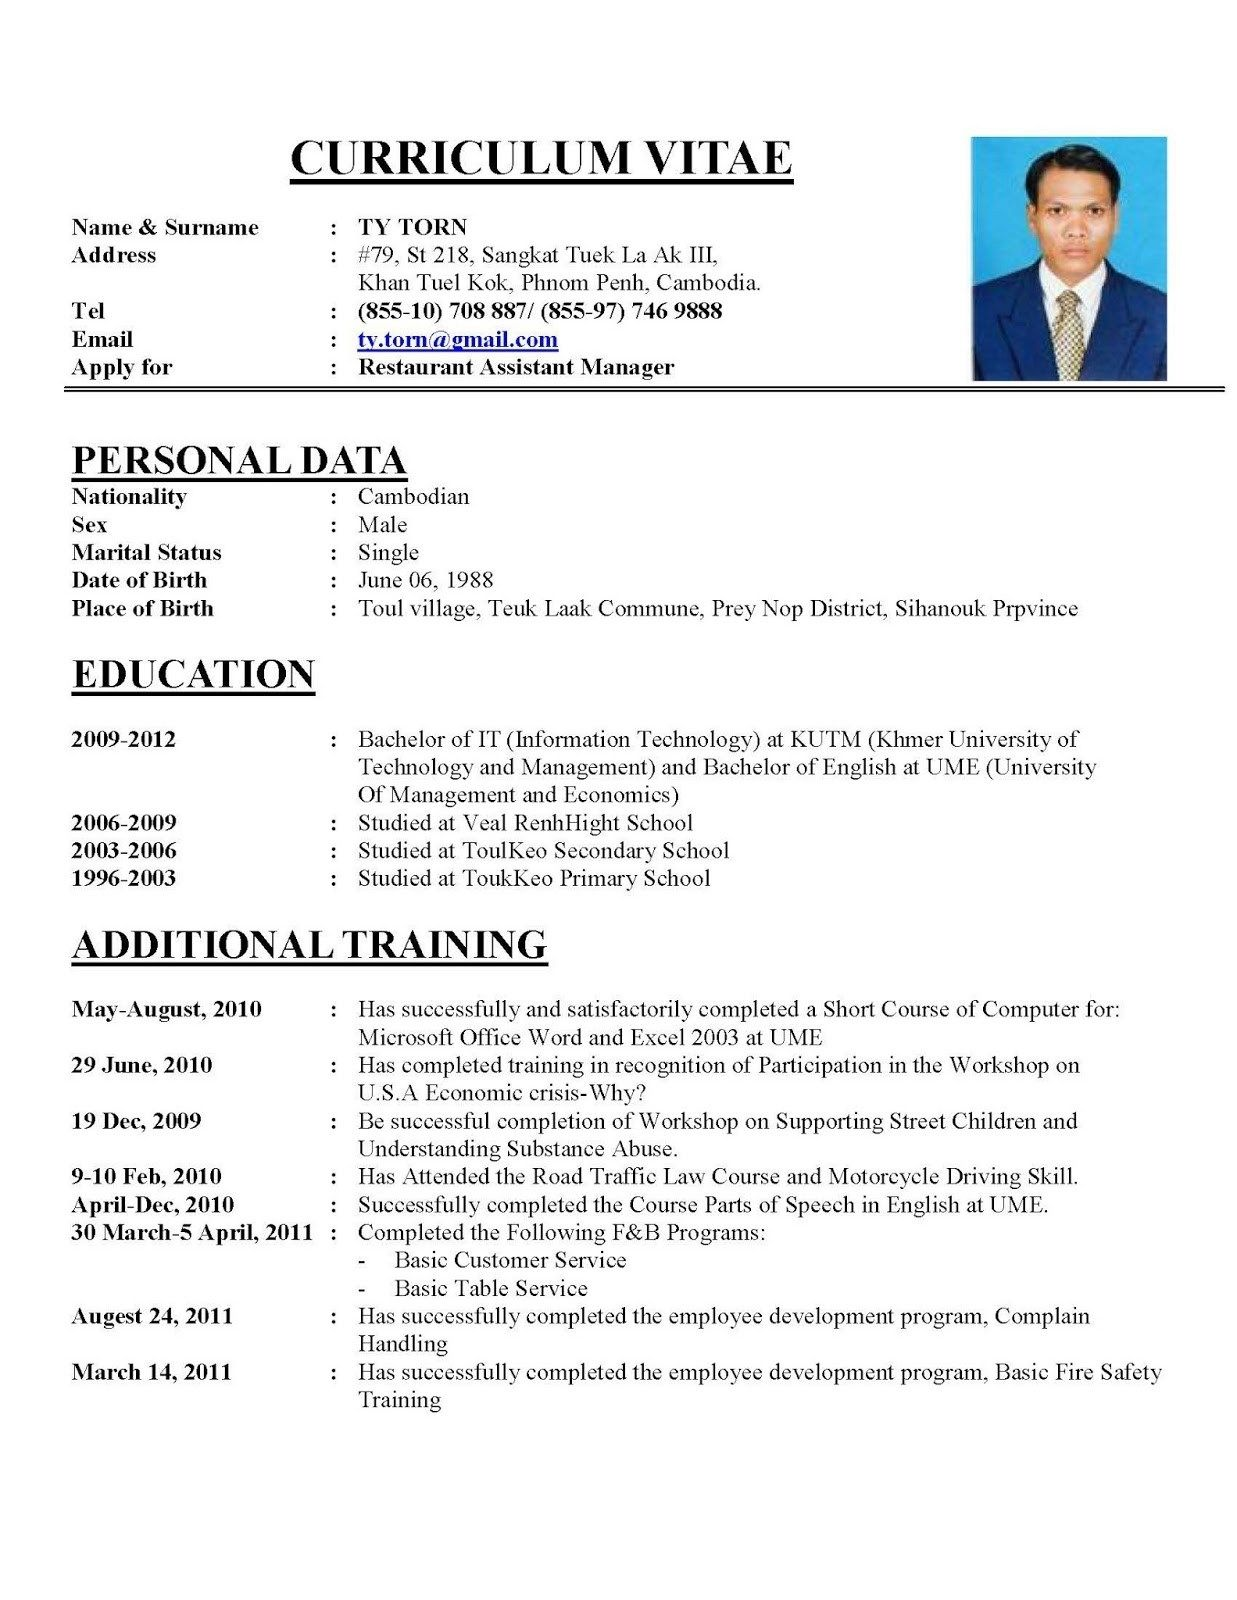 resume templates create free creating cv professional